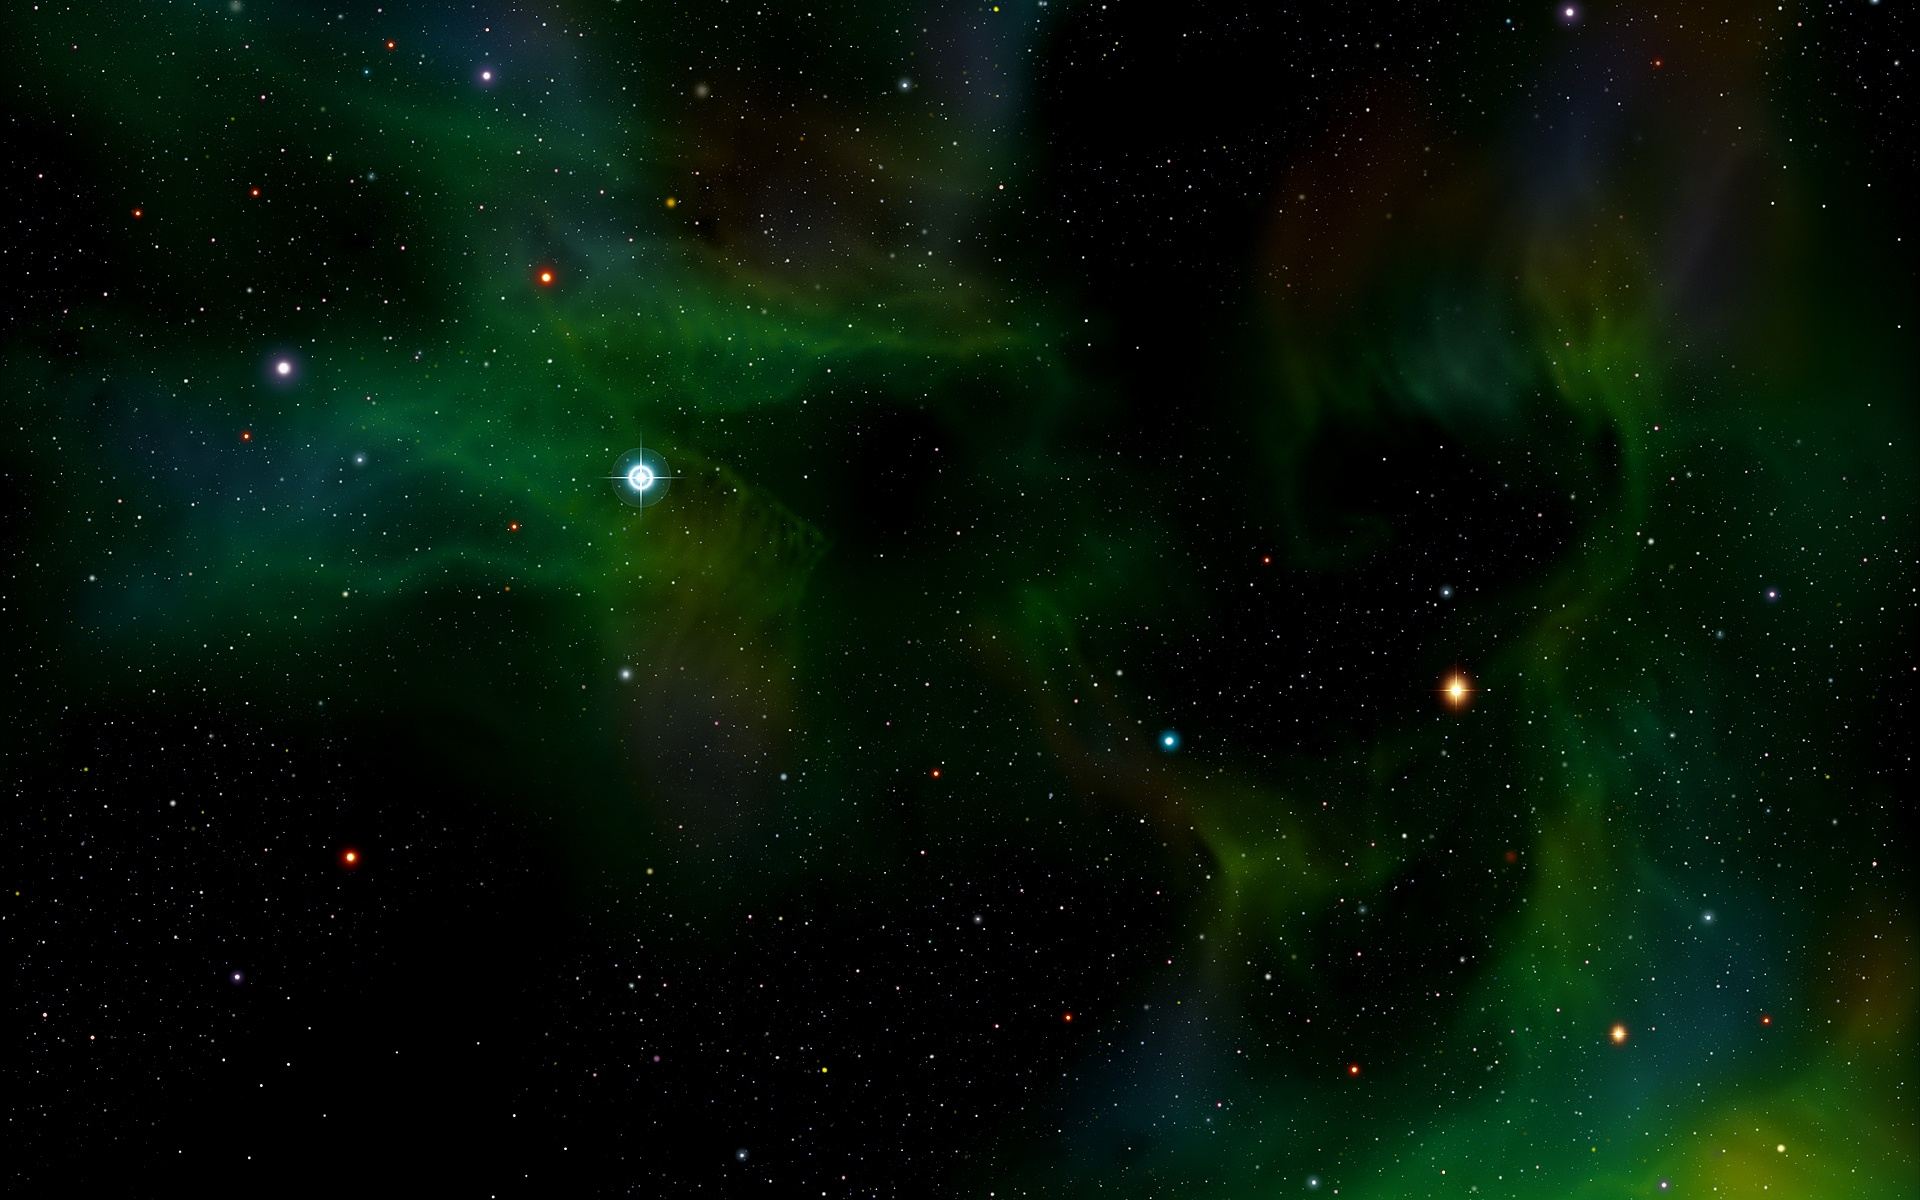 Darkness Green Space Wallpapers - 1920x1200 - 601271